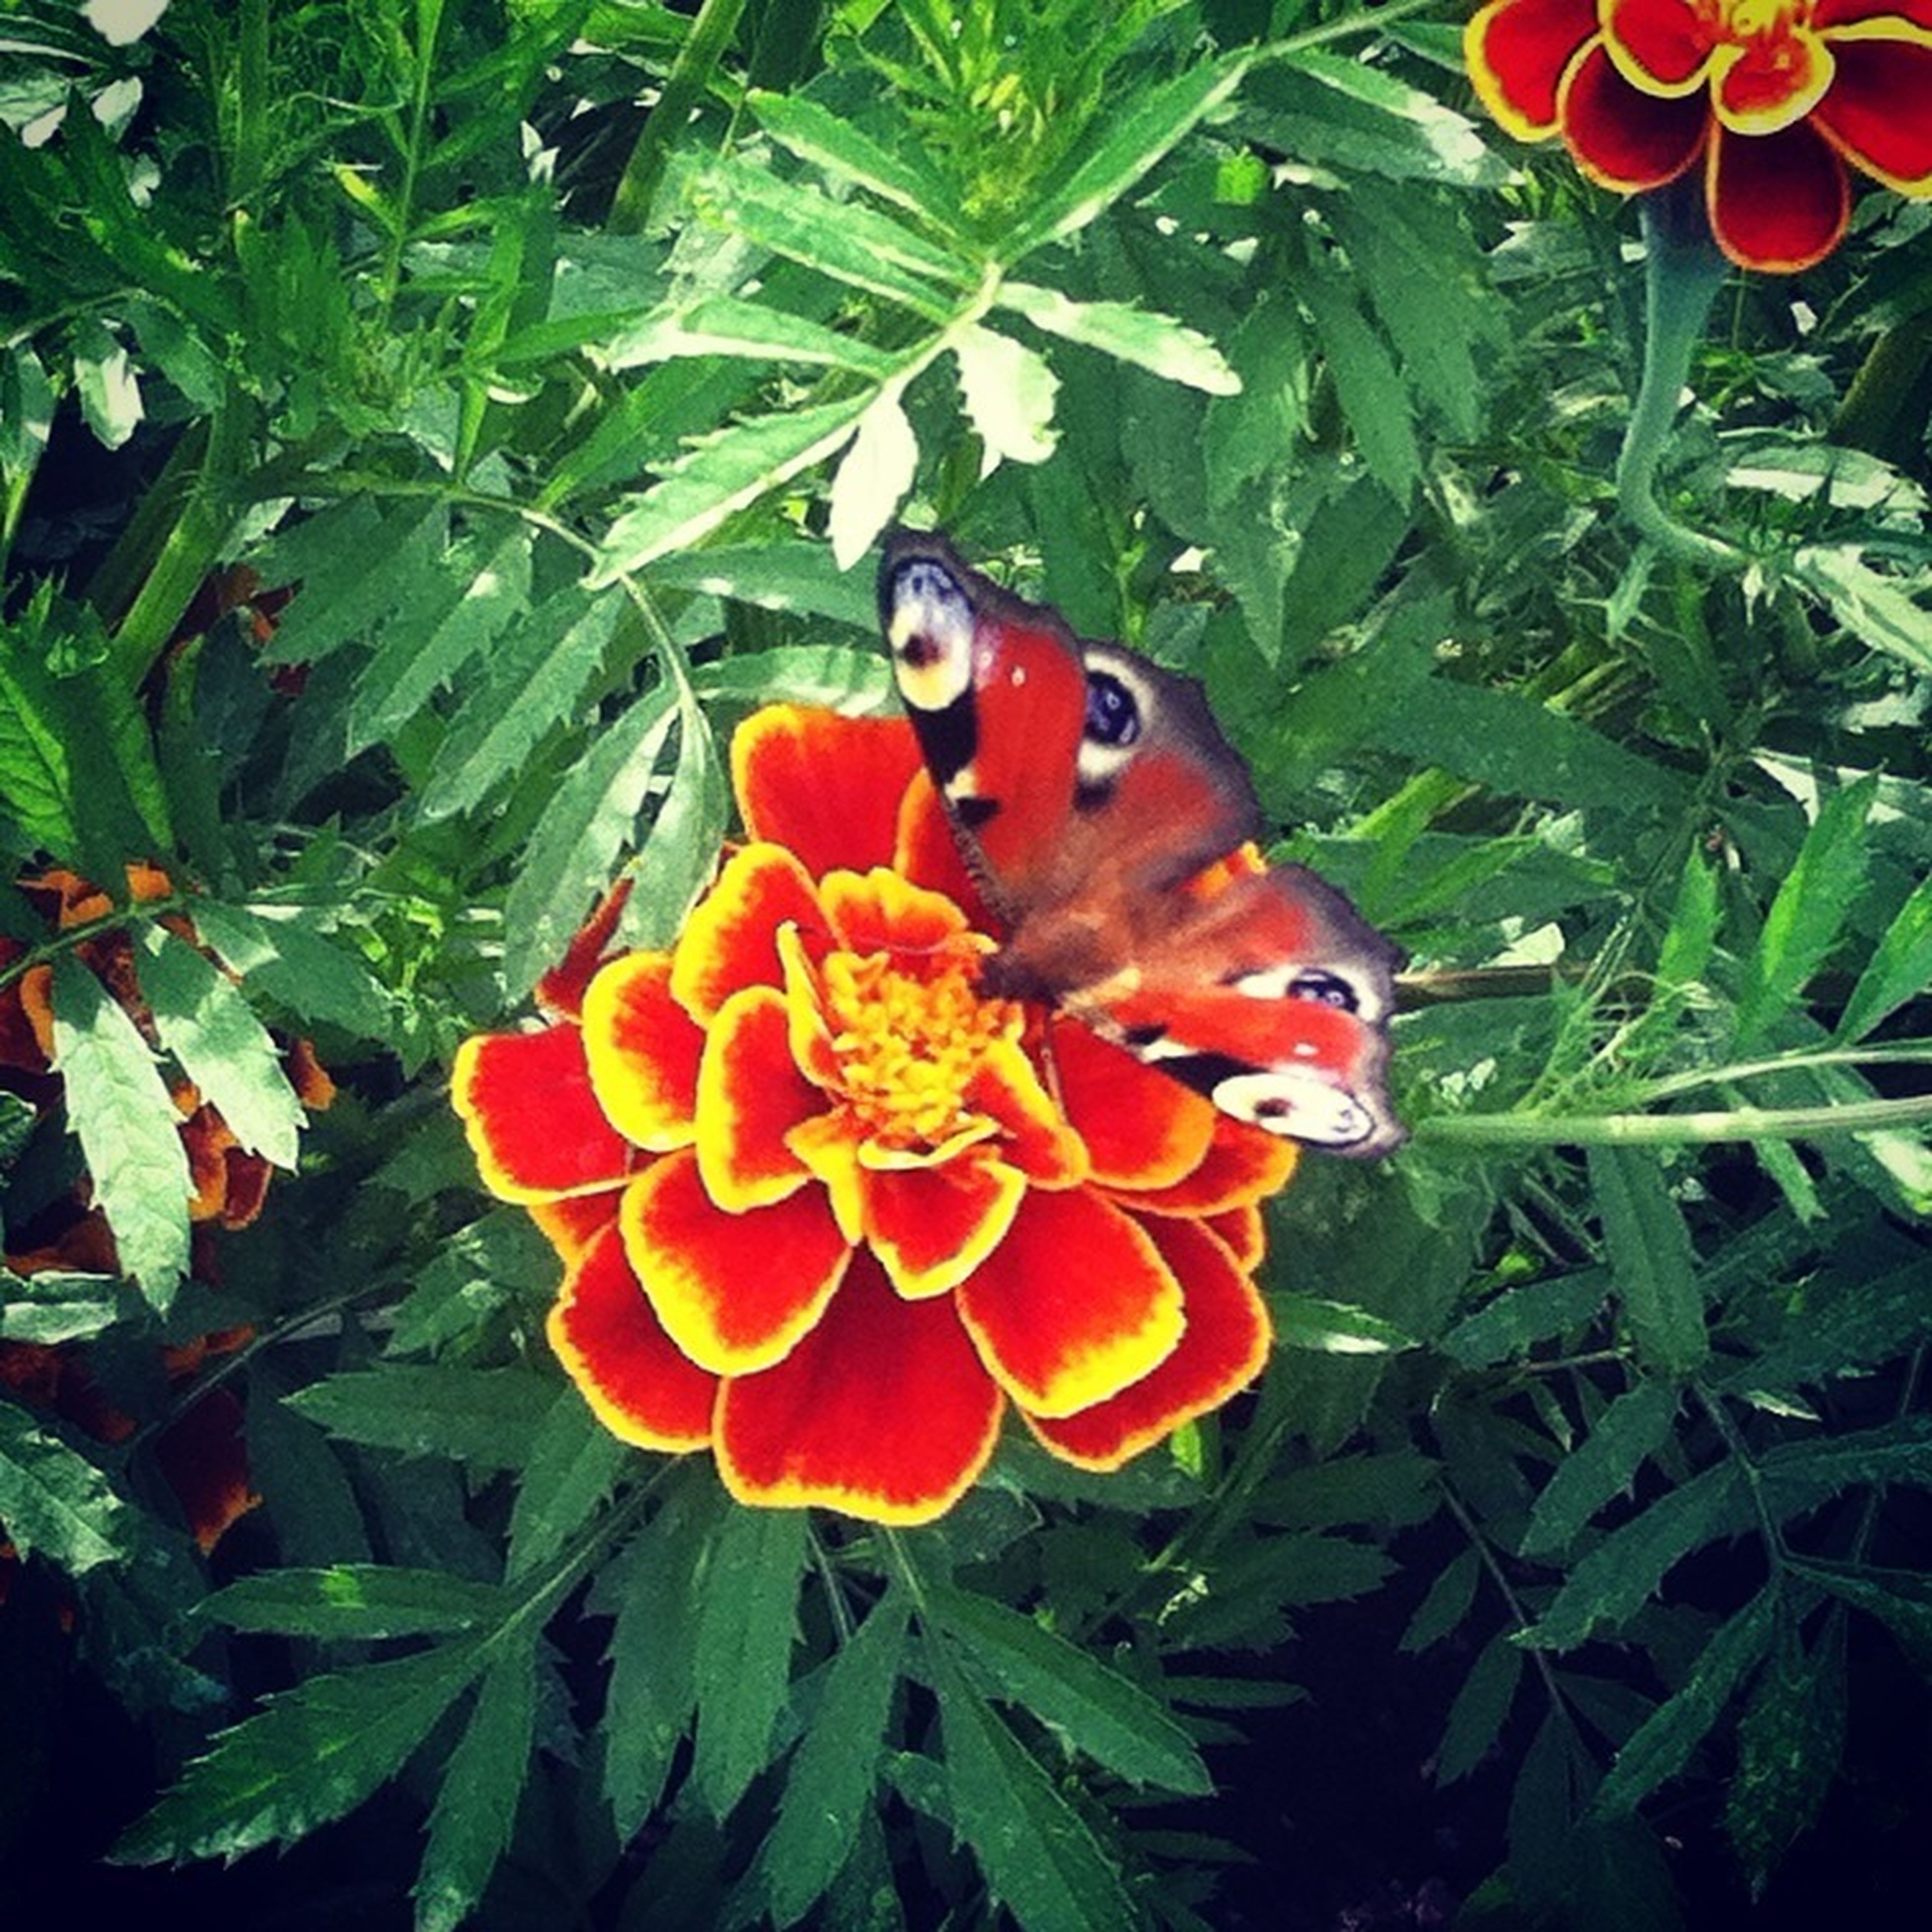 flower, freshness, petal, fragility, growth, flower head, plant, beauty in nature, red, insect, blooming, one animal, leaf, nature, orange color, animal themes, close-up, animals in the wild, high angle view, green color